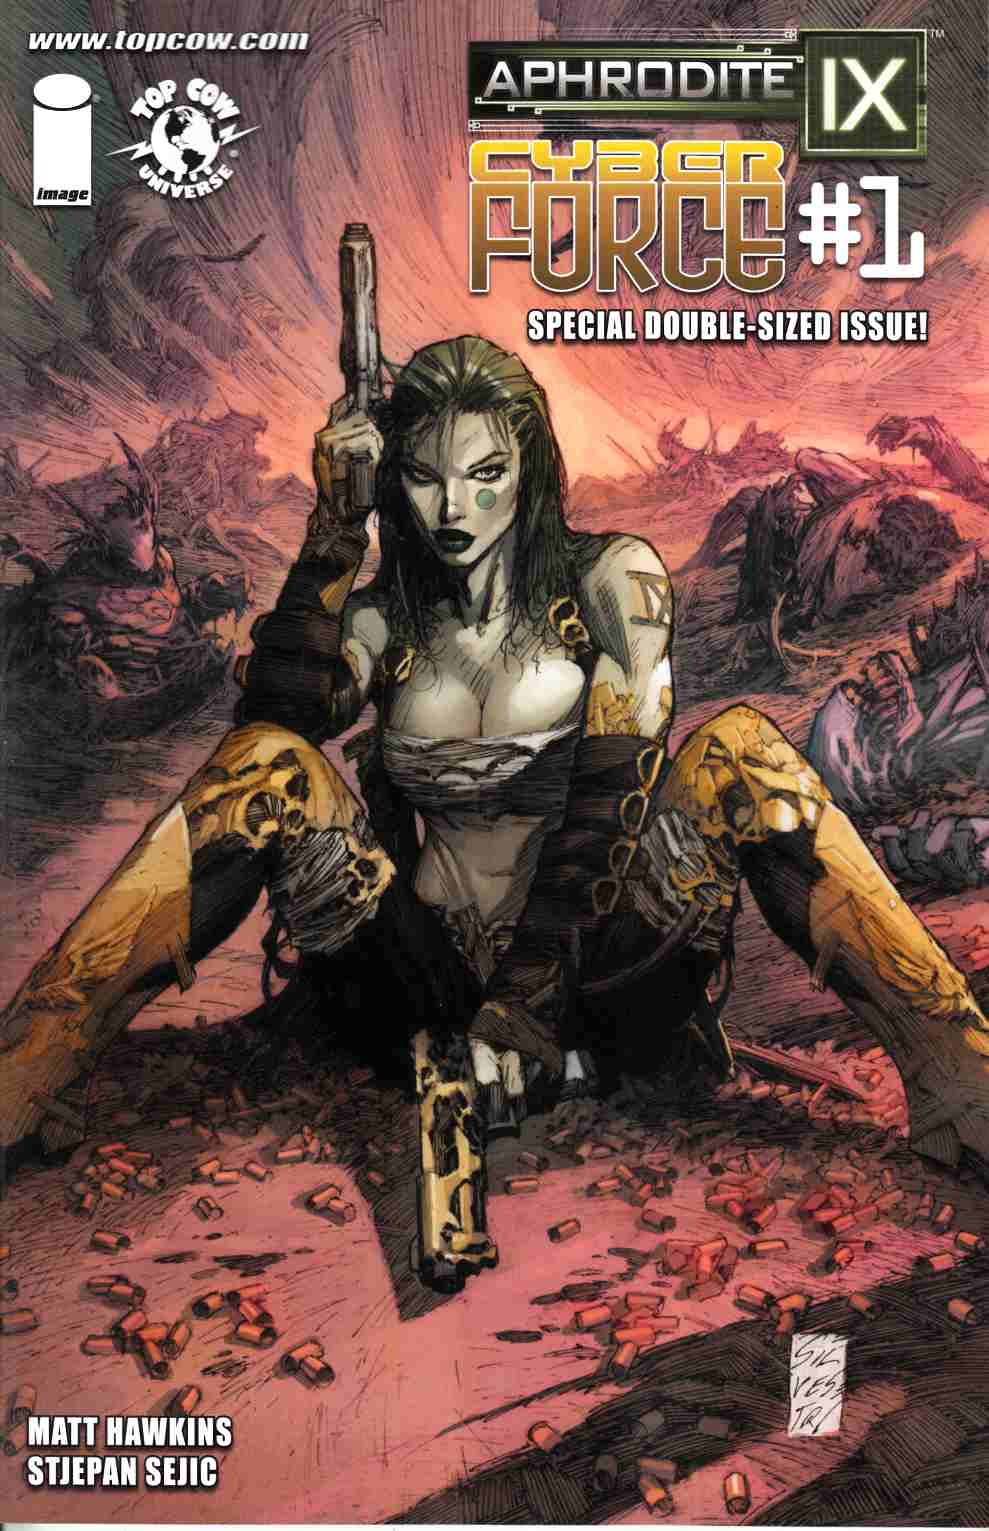 Aphrodite IX Cyber Force #1 Cover C- Silvestri [Comic]_THUMBNAIL